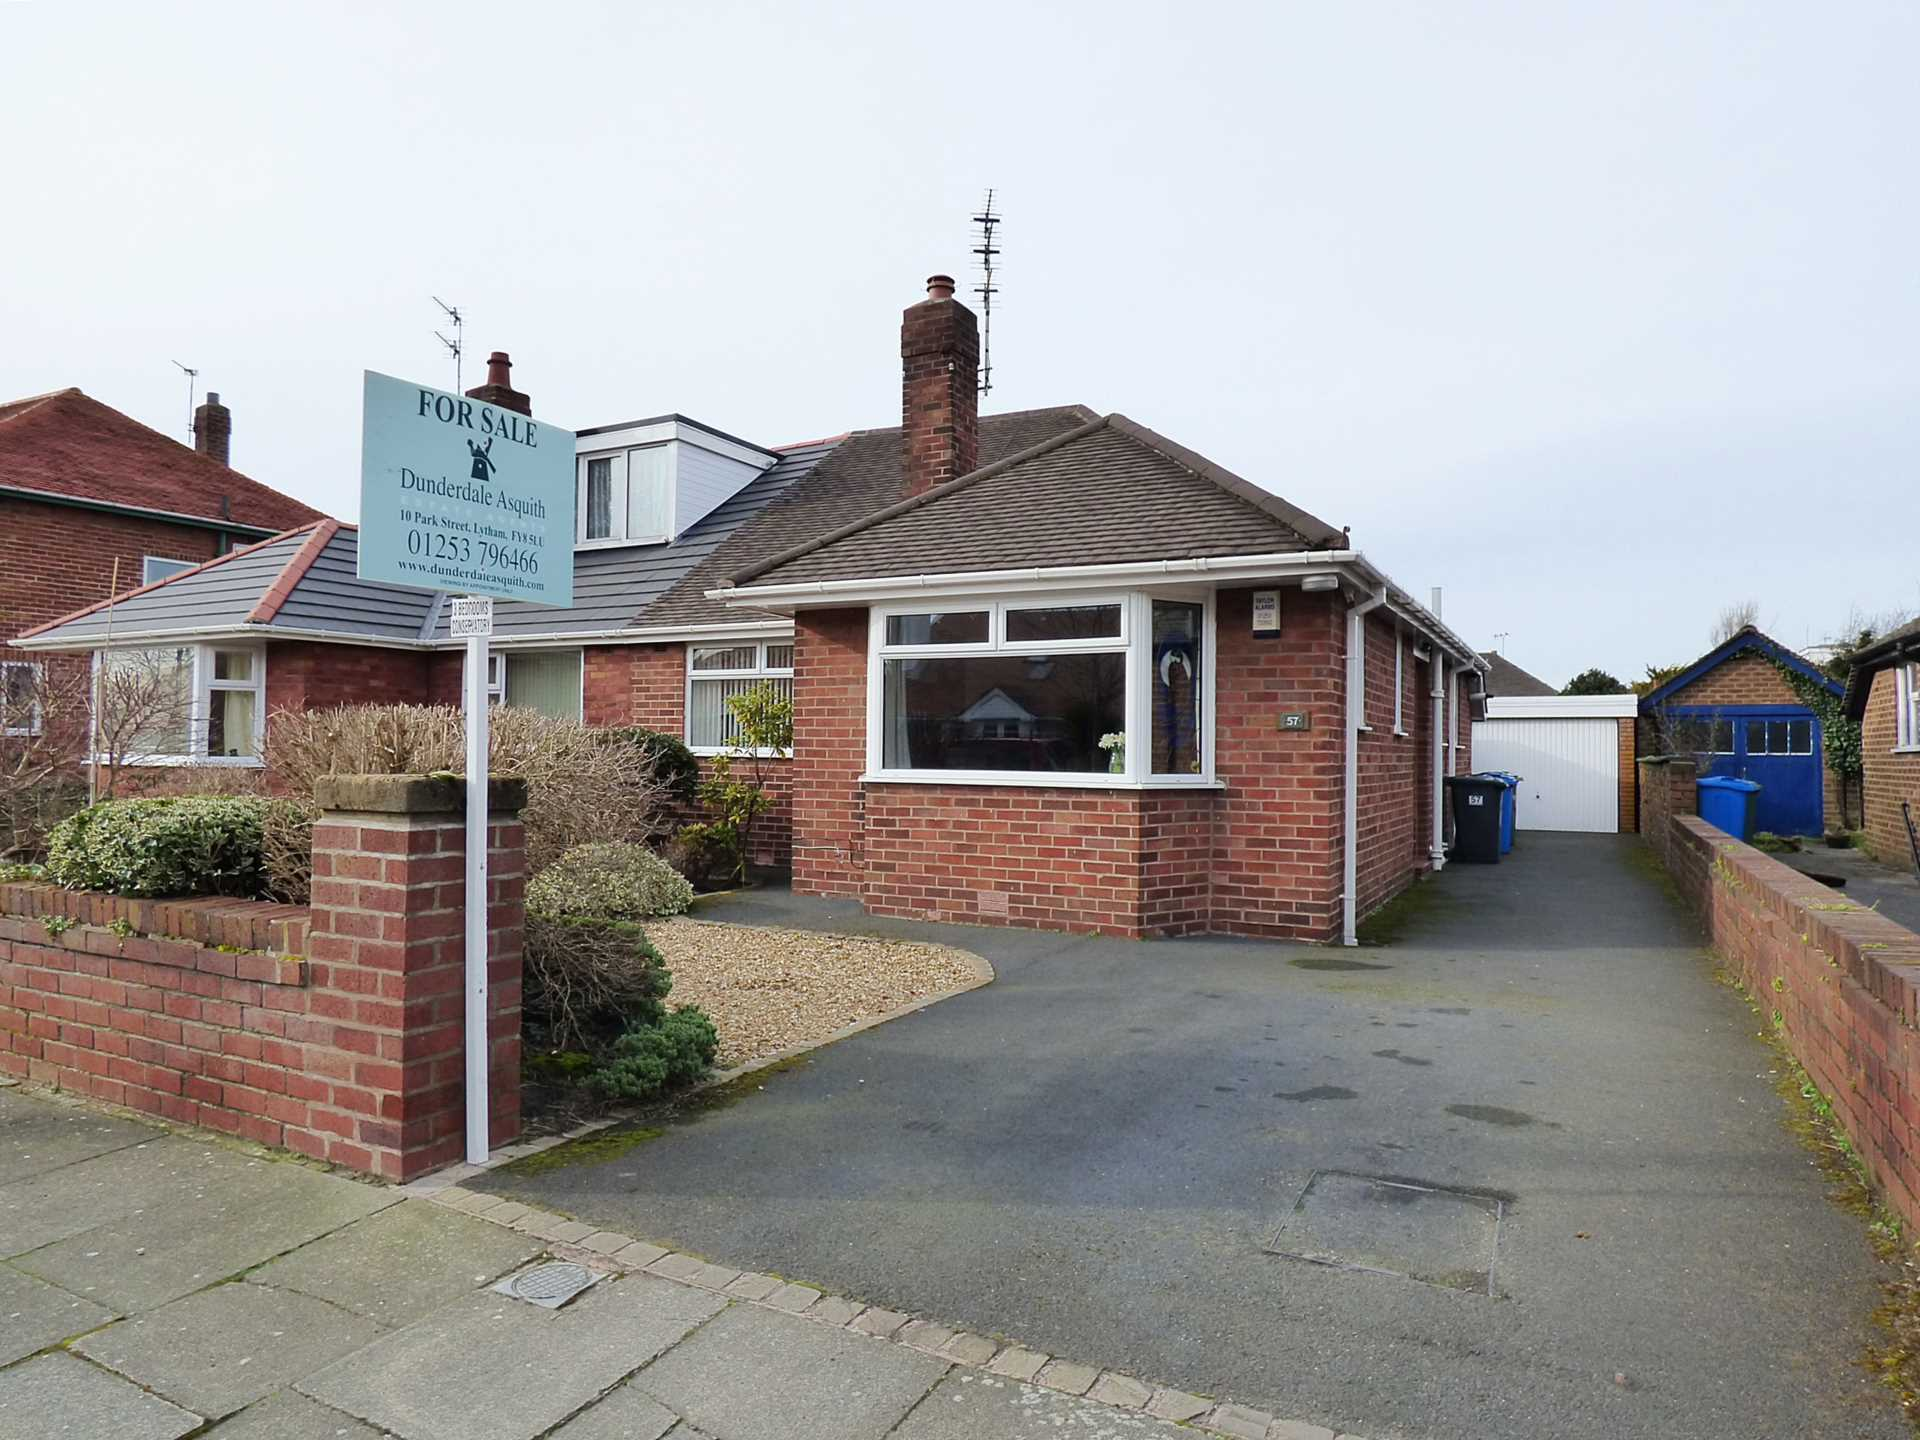 3 Bedroom Semi Detached Bungalow For Sale Kenilworth Road Lytham St Annes Fy8 1lb